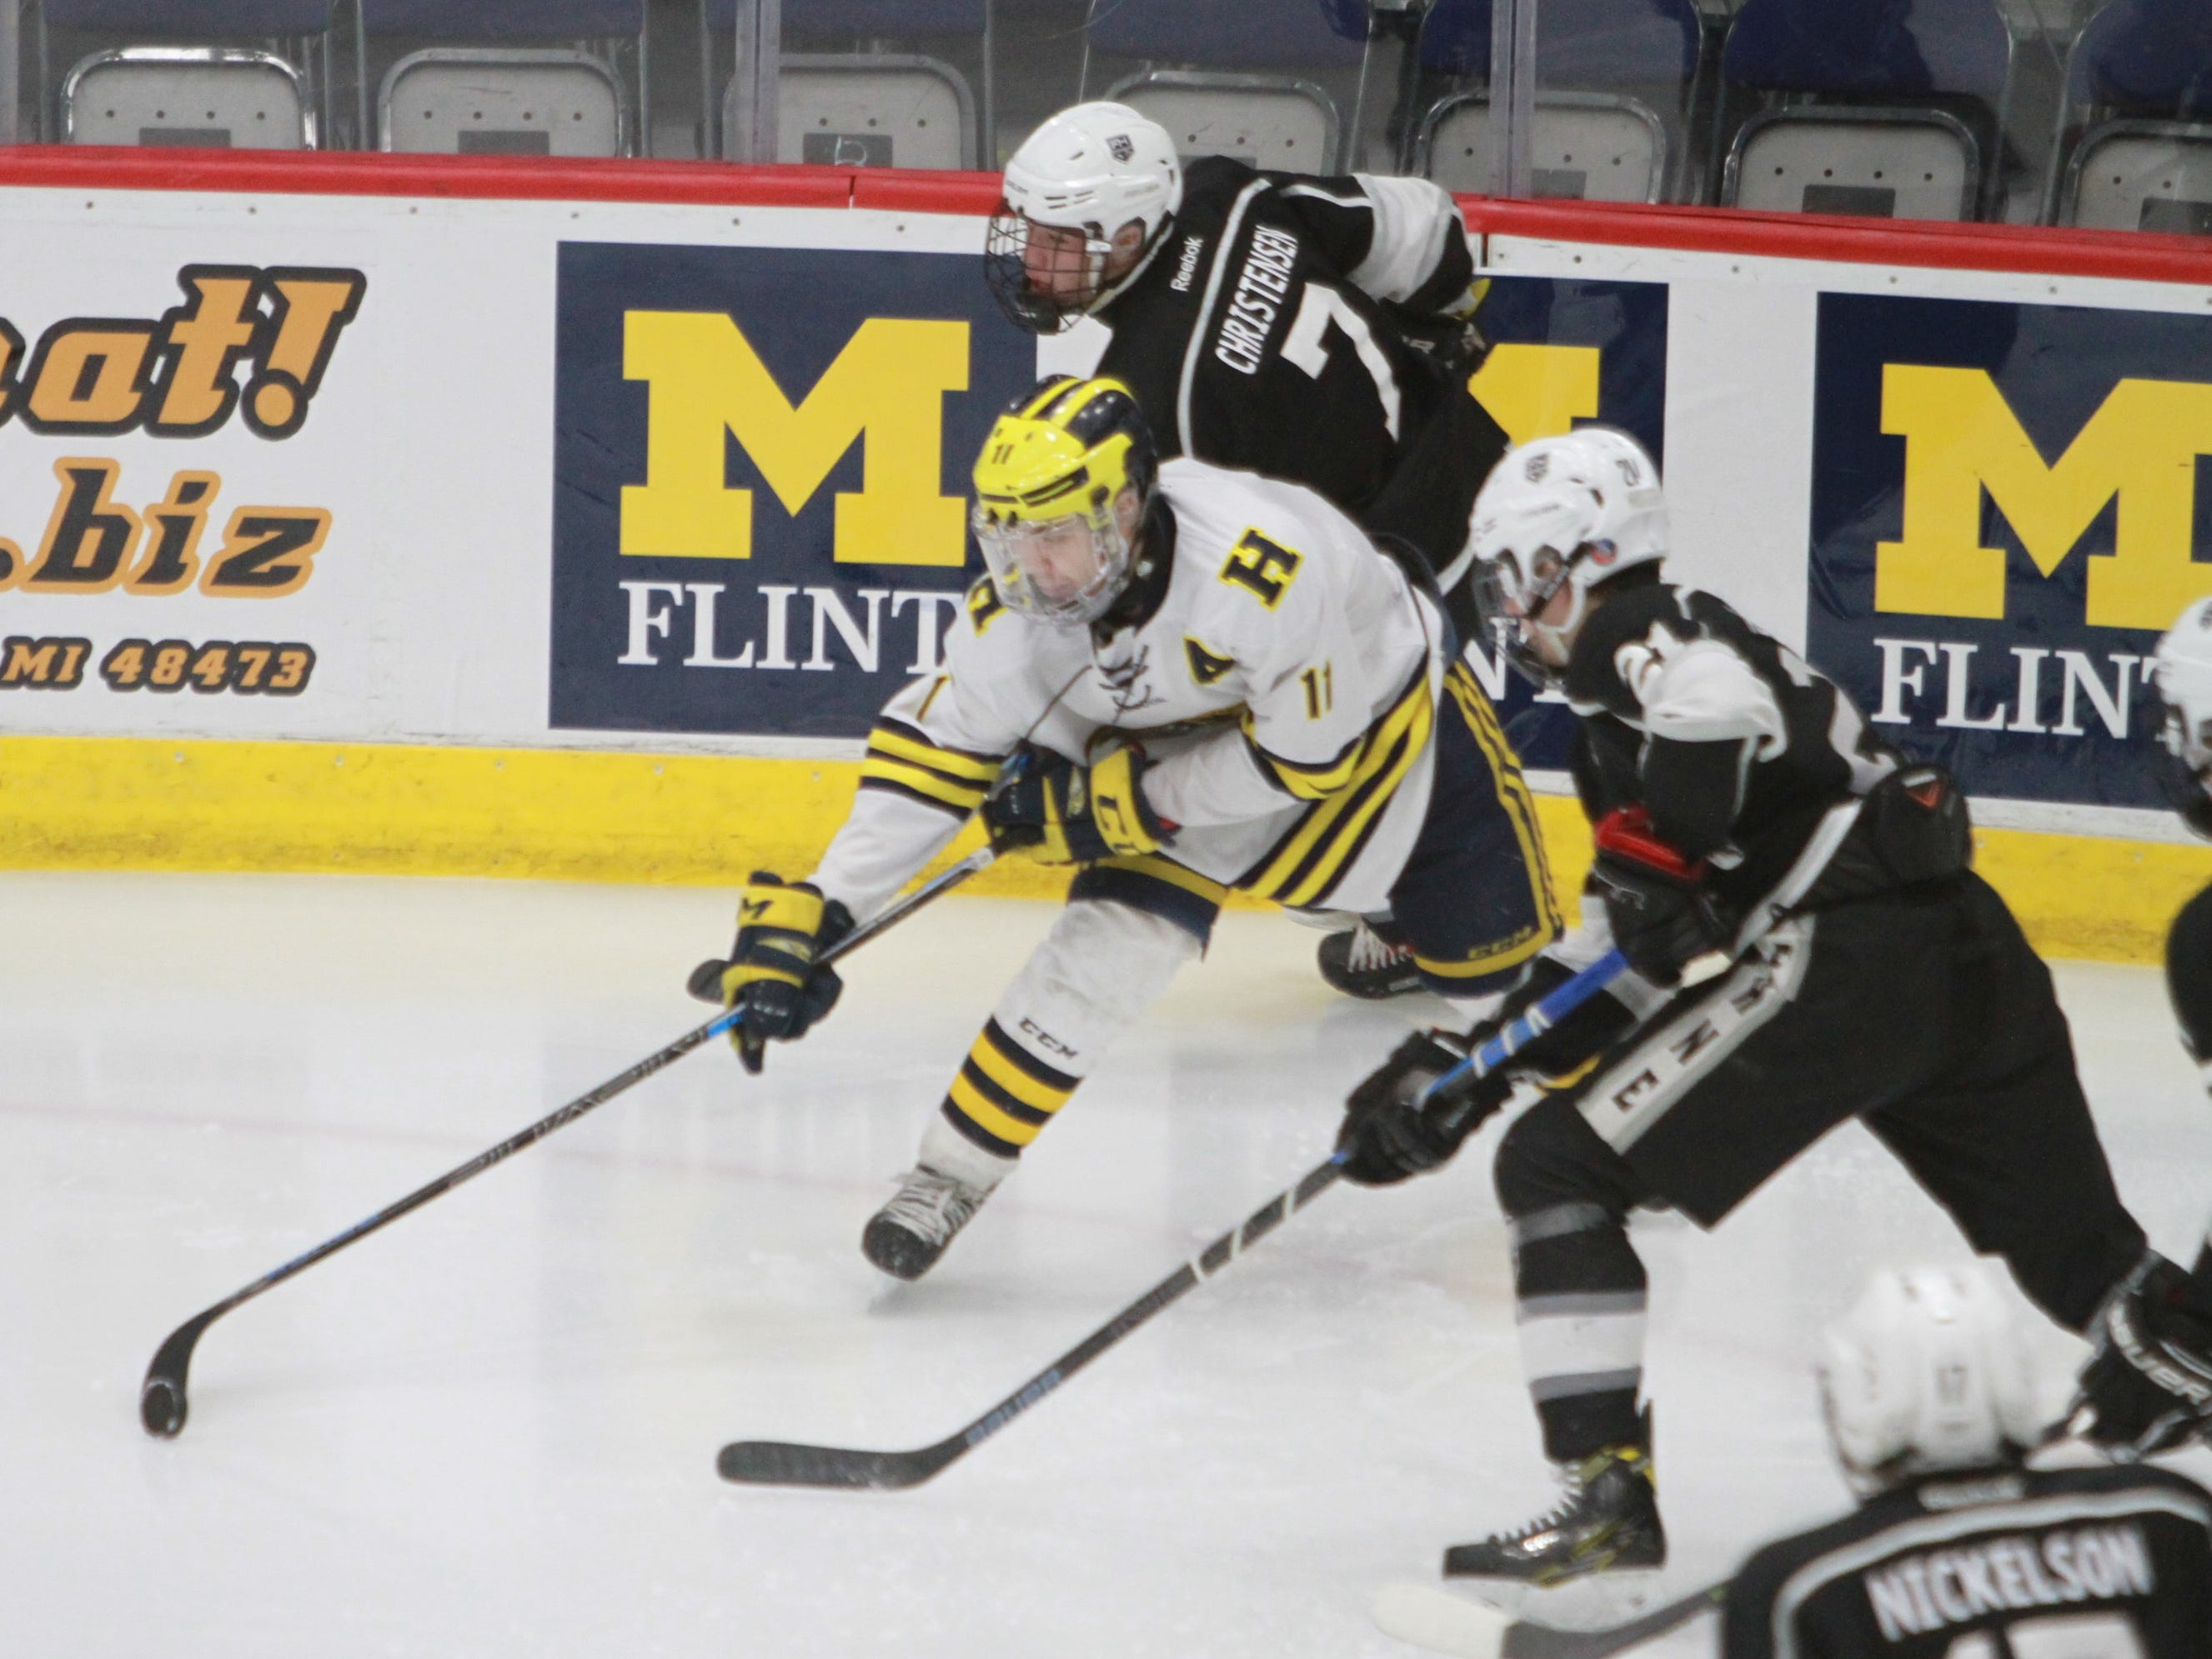 Hartland's Gabe Anderson (11) stickhandles while surrounded by Forest Hills Eastern's Ryan Almassian (21) and Noah Christensen (7) during the state Division 2 hockey quarterfinals in Flint on Tuesday, March 5, 2019.